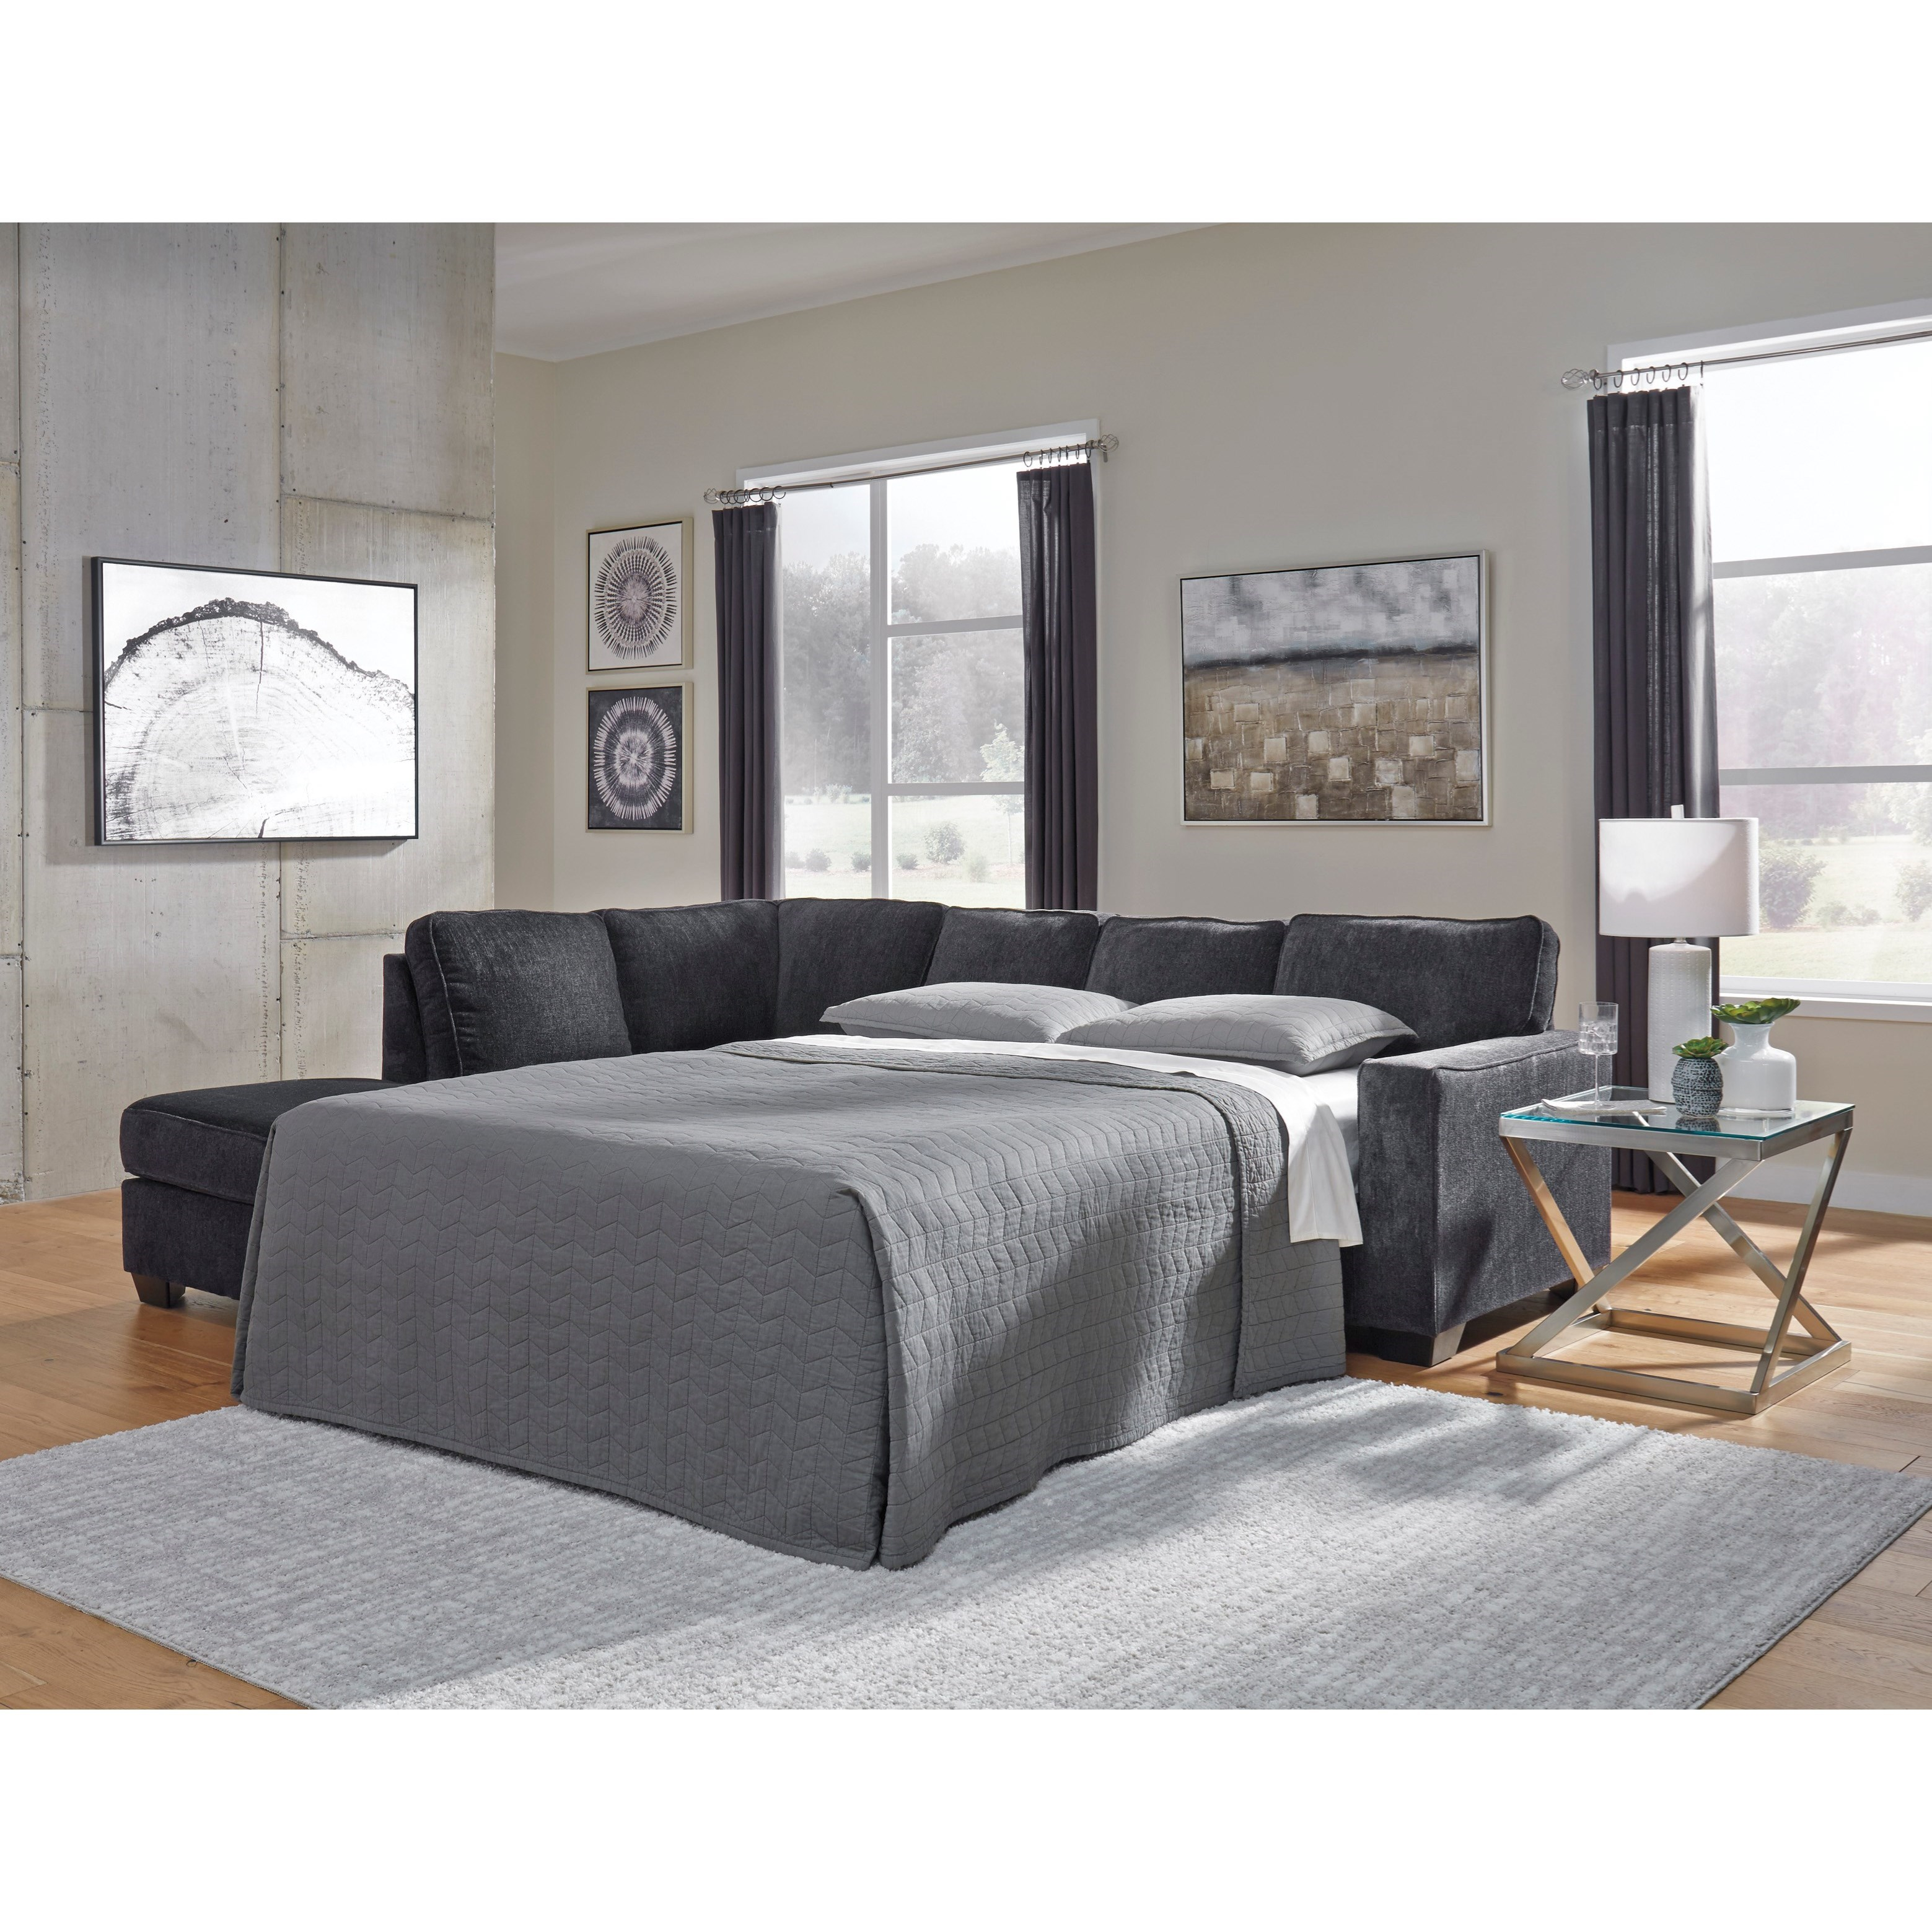 Signature Design By Ashley Altari Sleeper Sectional With